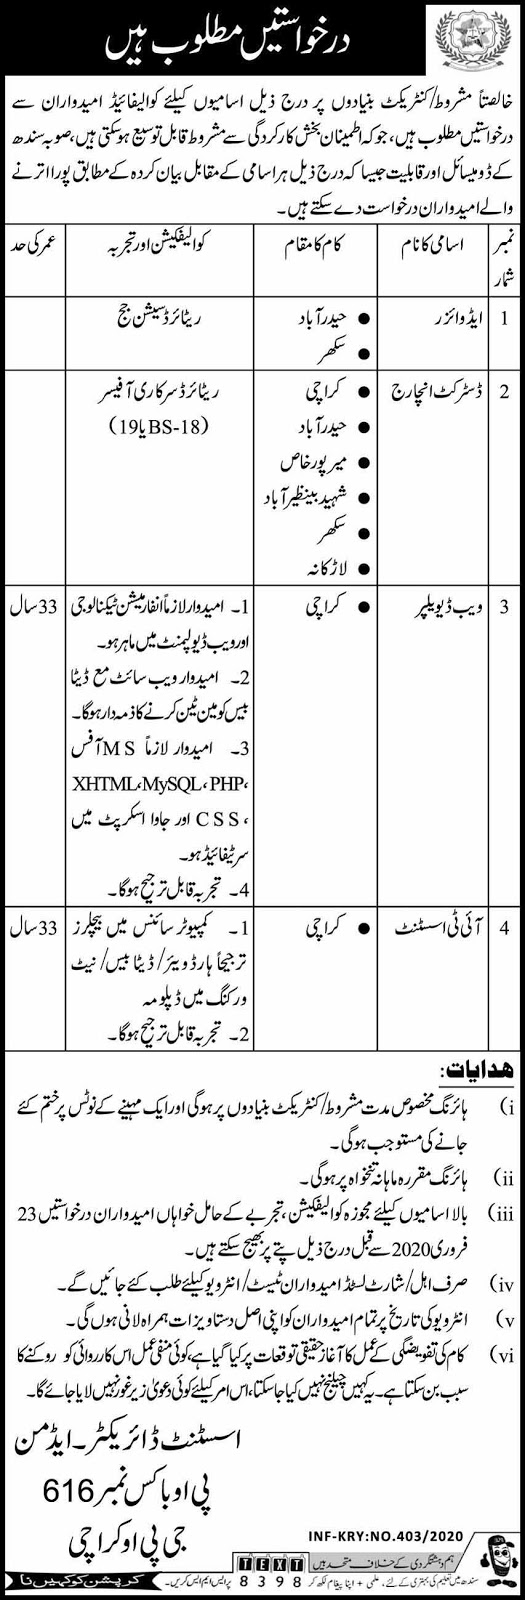 College Education Department Govt Of Sindh Jobs 2020